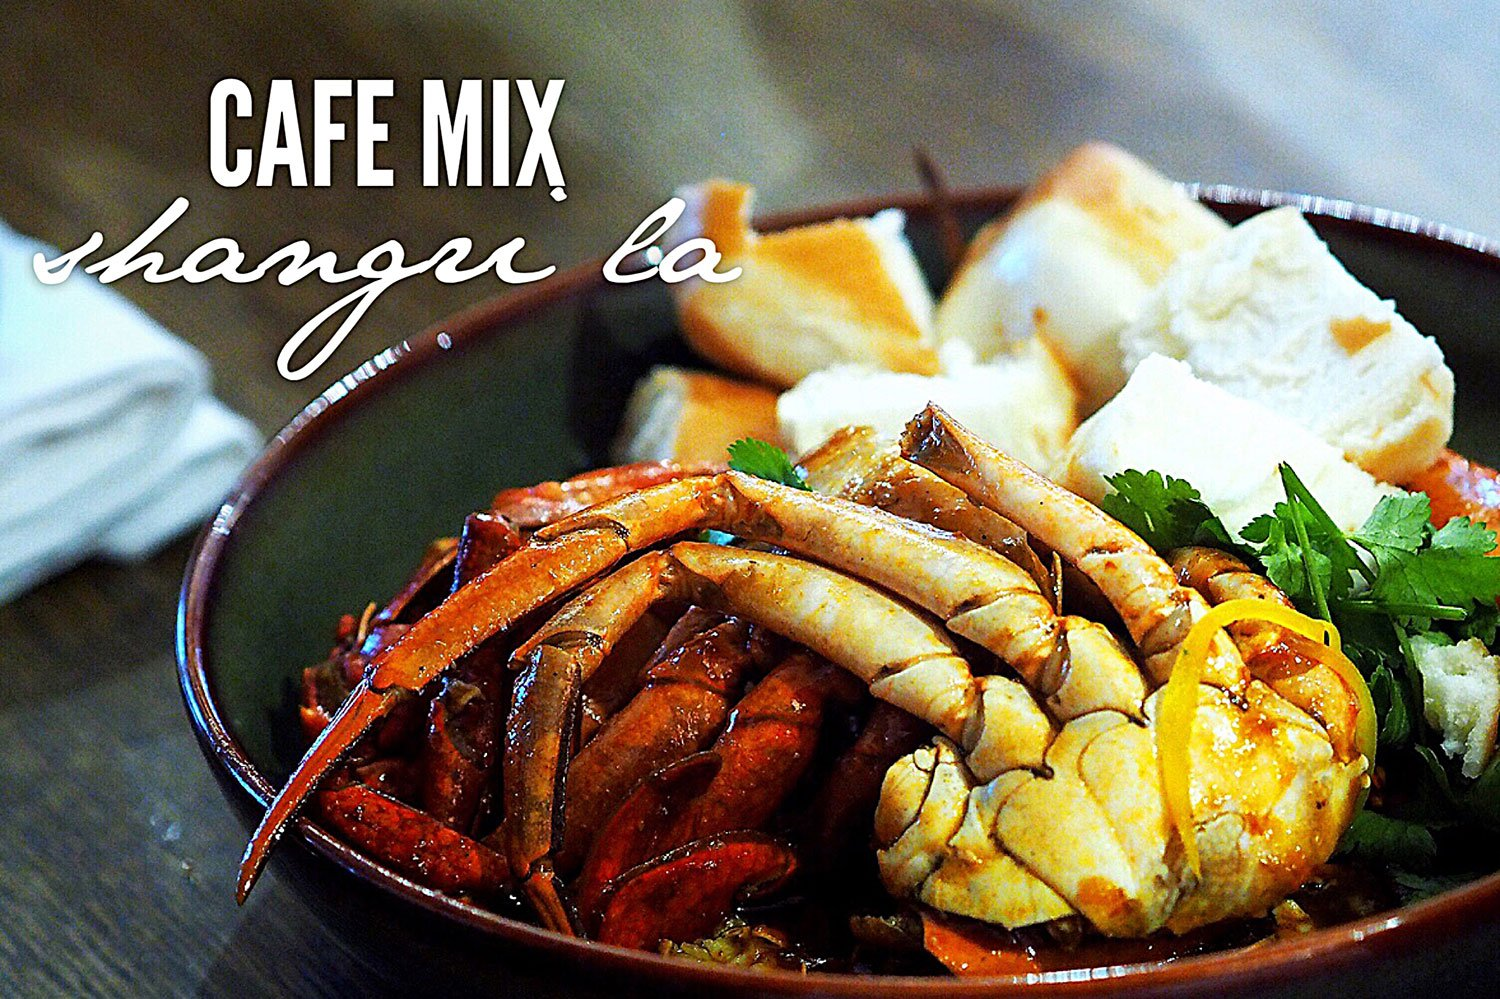 Sydney Food Blog Review of Cafe Mix, Shangri La